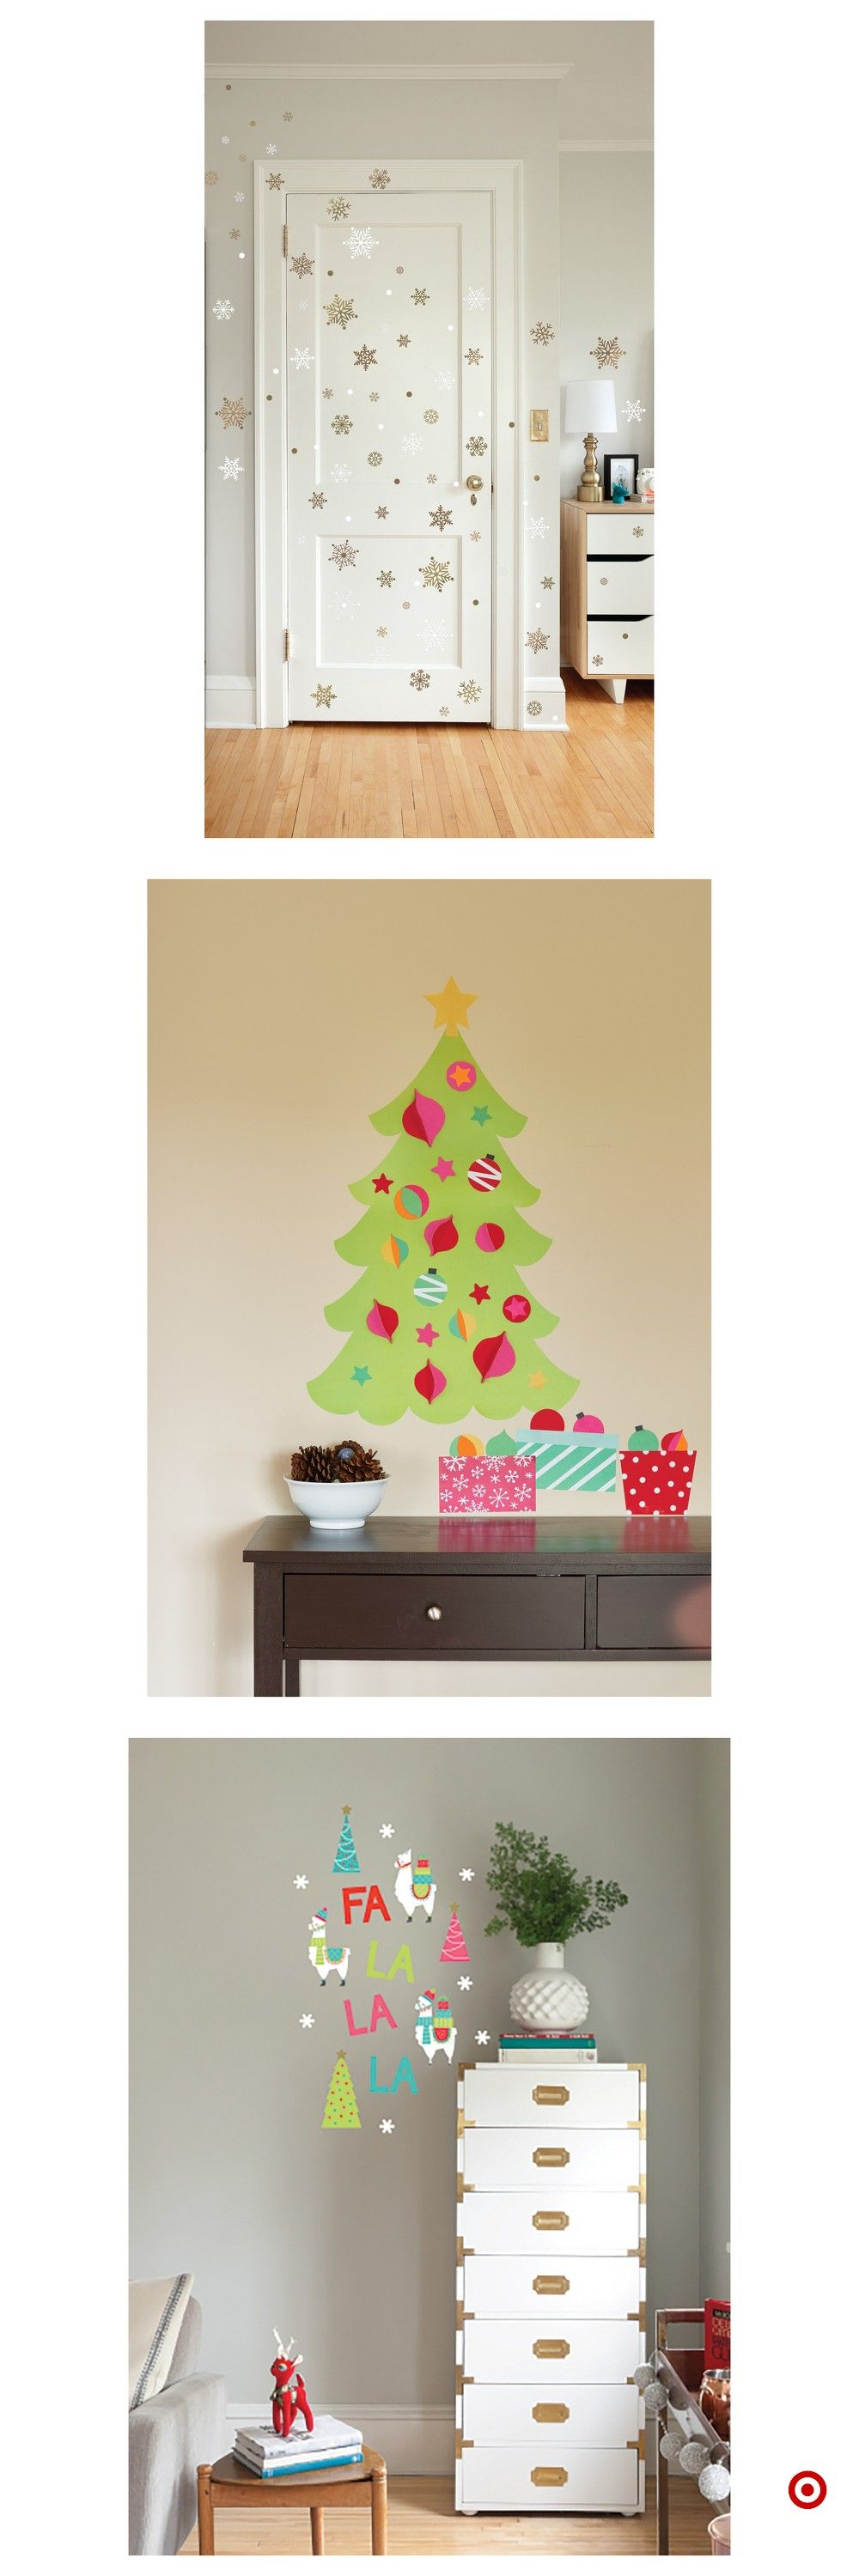 Funky Target Kitchen Wall Decor Photos - Wall Art Collections ...